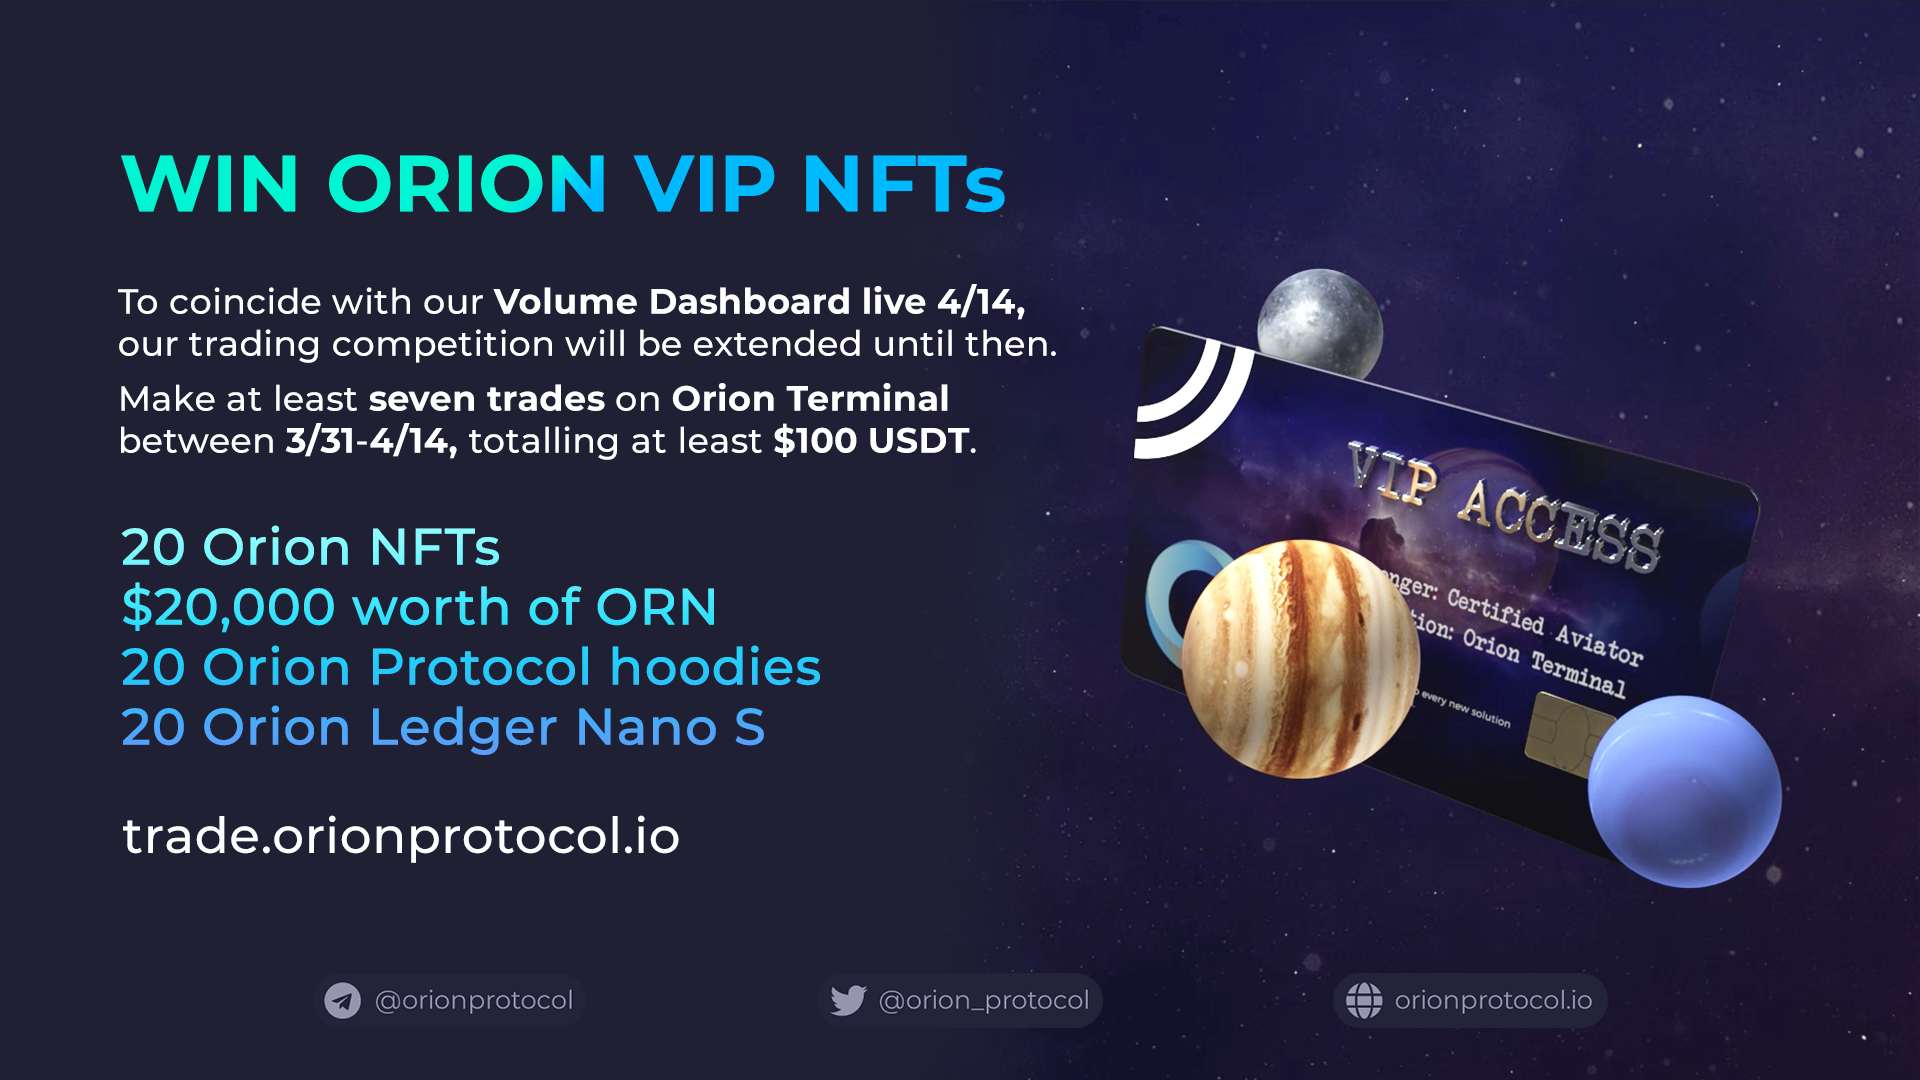 Win Orion VIP NFTs